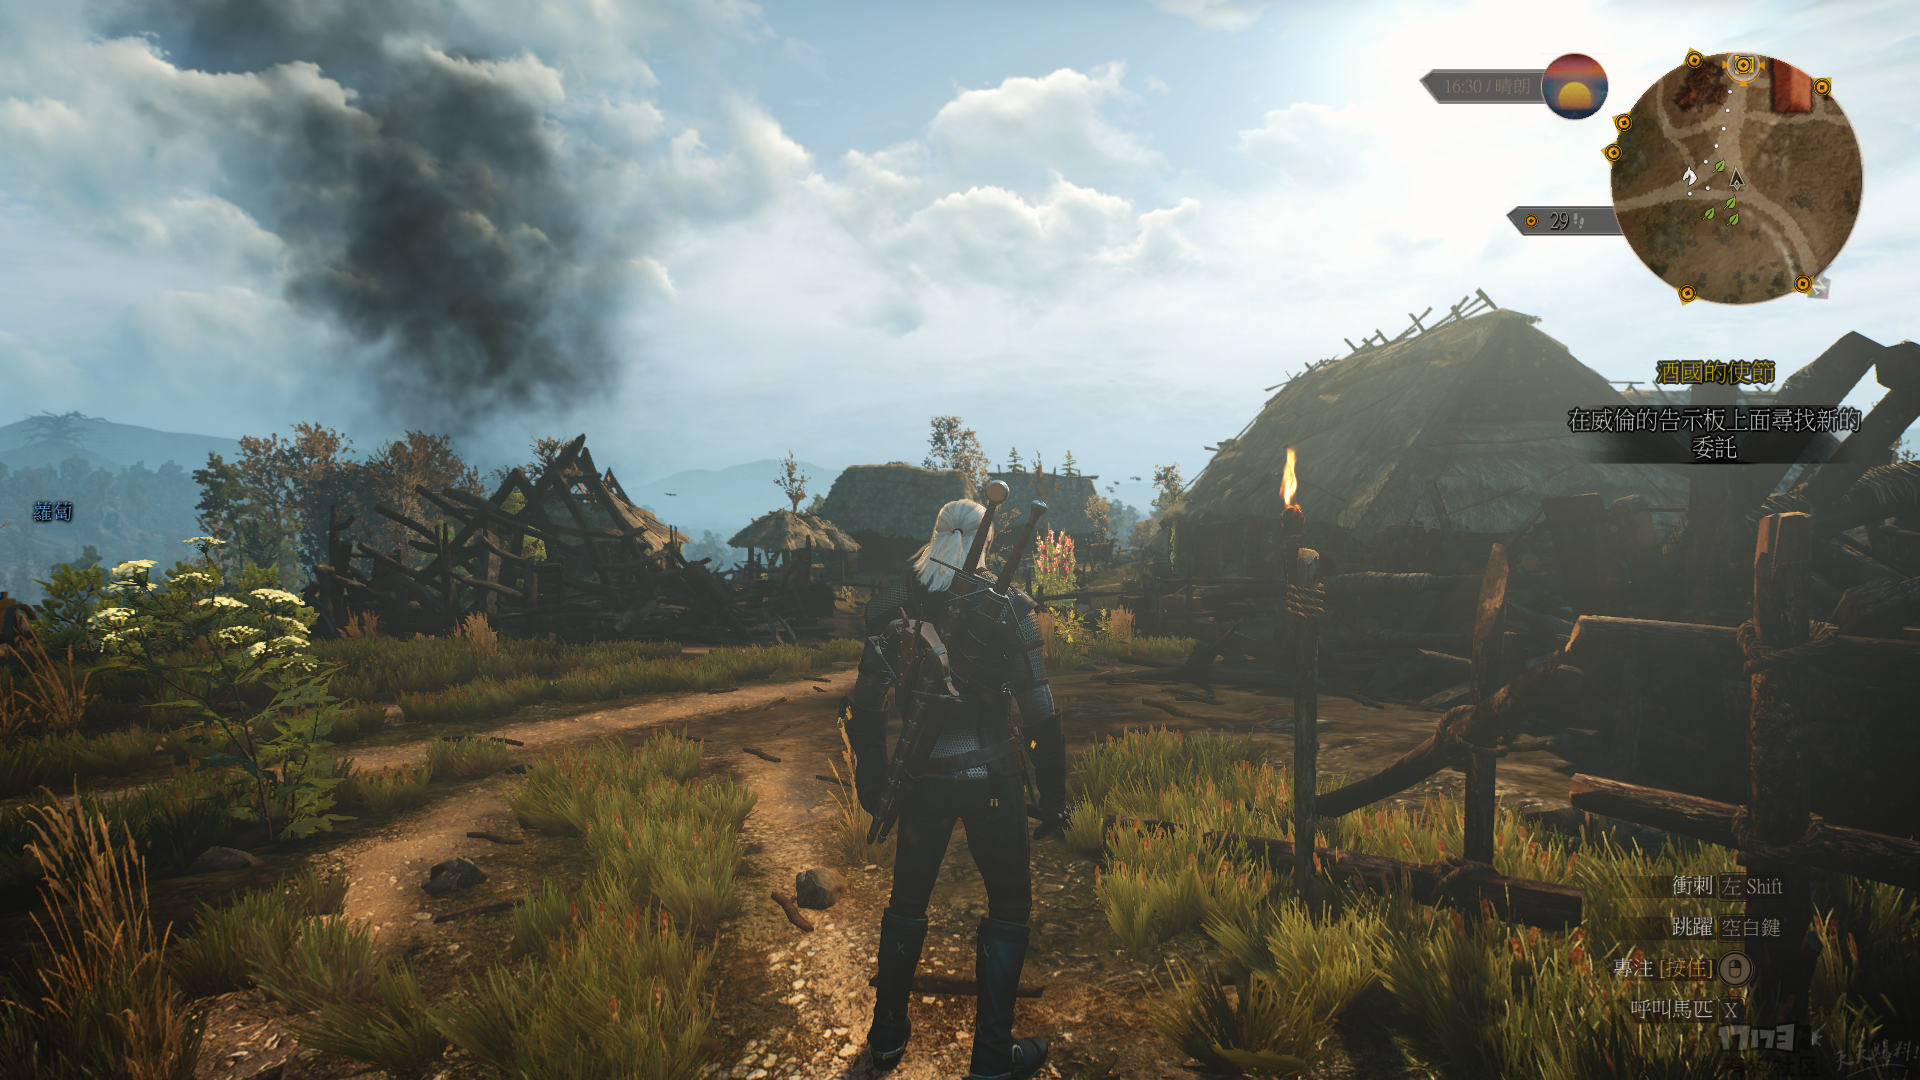 The Witcher 3 Screenshot 2018.04.20 - 22.39.02.39.png